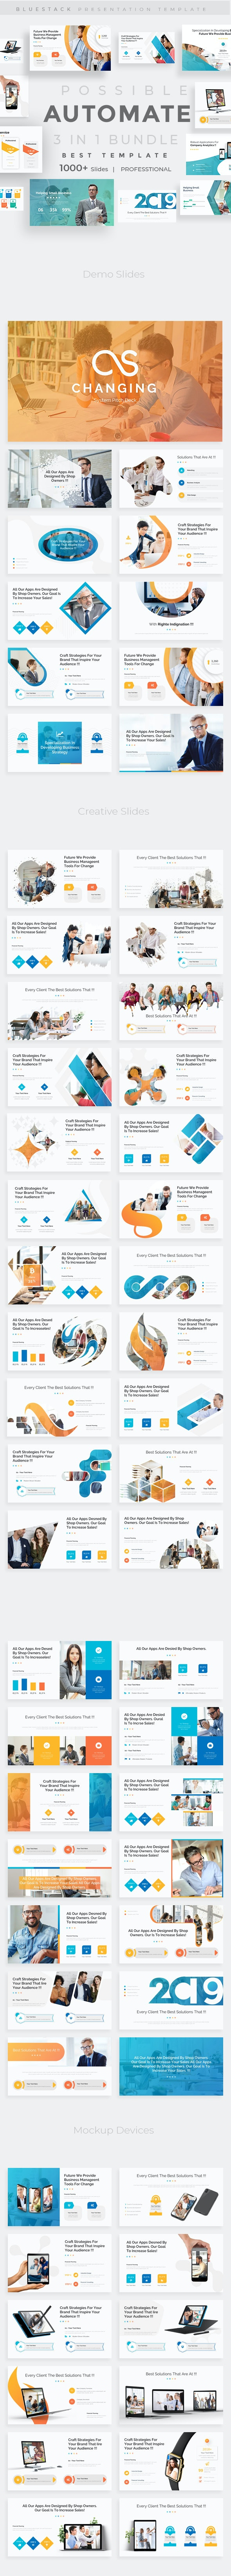 3 in 1 Automate Possible Bundle Creative and Business Pitch Deck Google Slide Template - Google Slides Presentation Templates